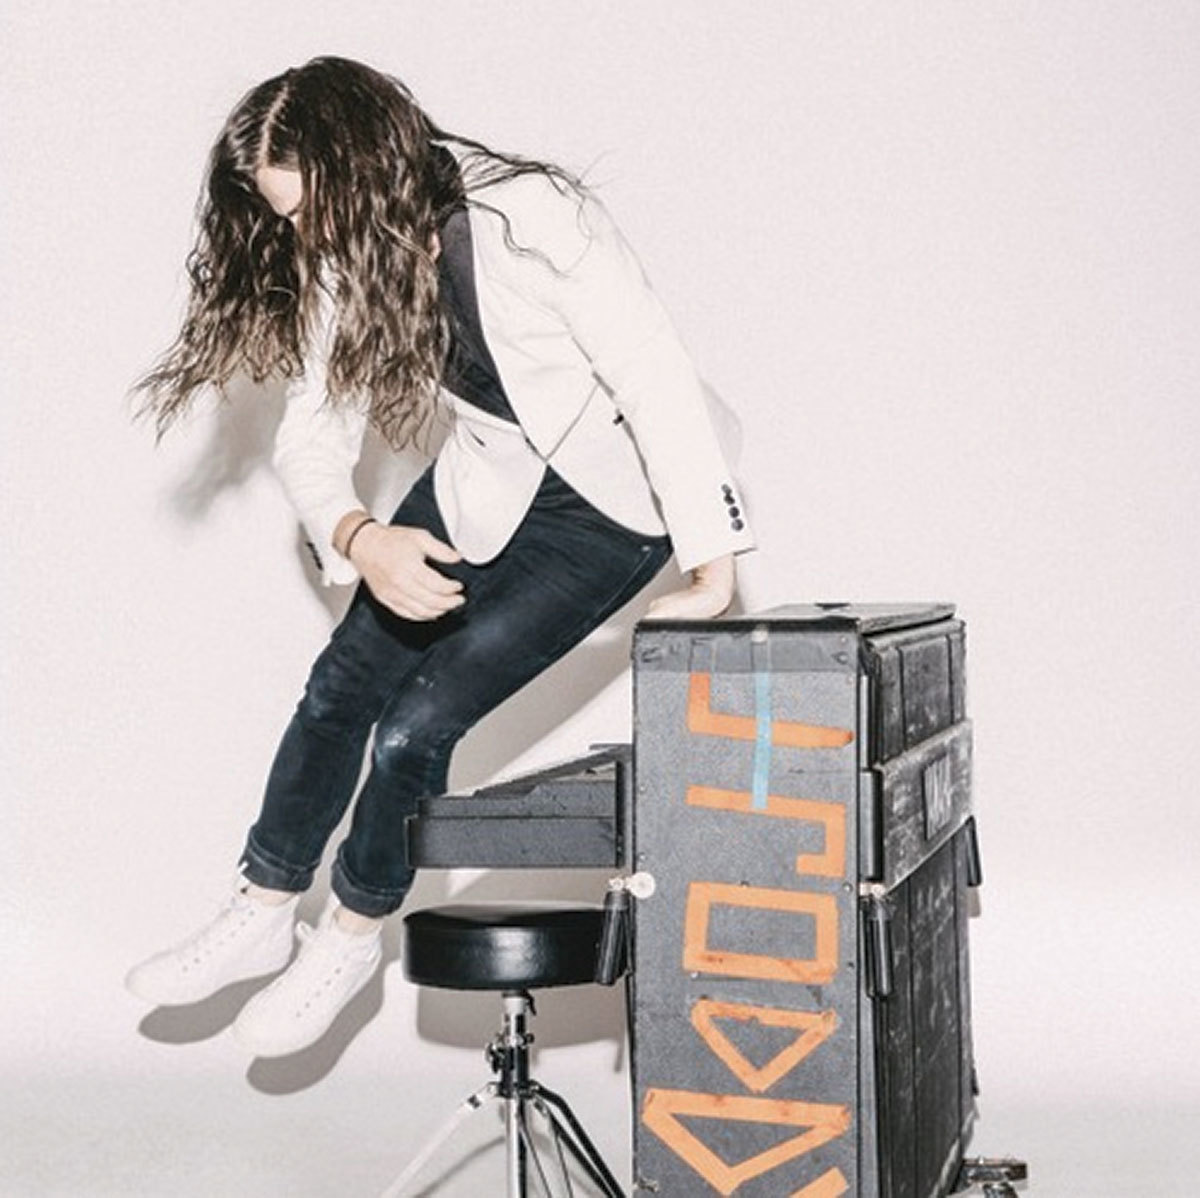 SEPT-2017-MUSIC-REVIEWS-J-RODDY-ART.jpg#asset:48493